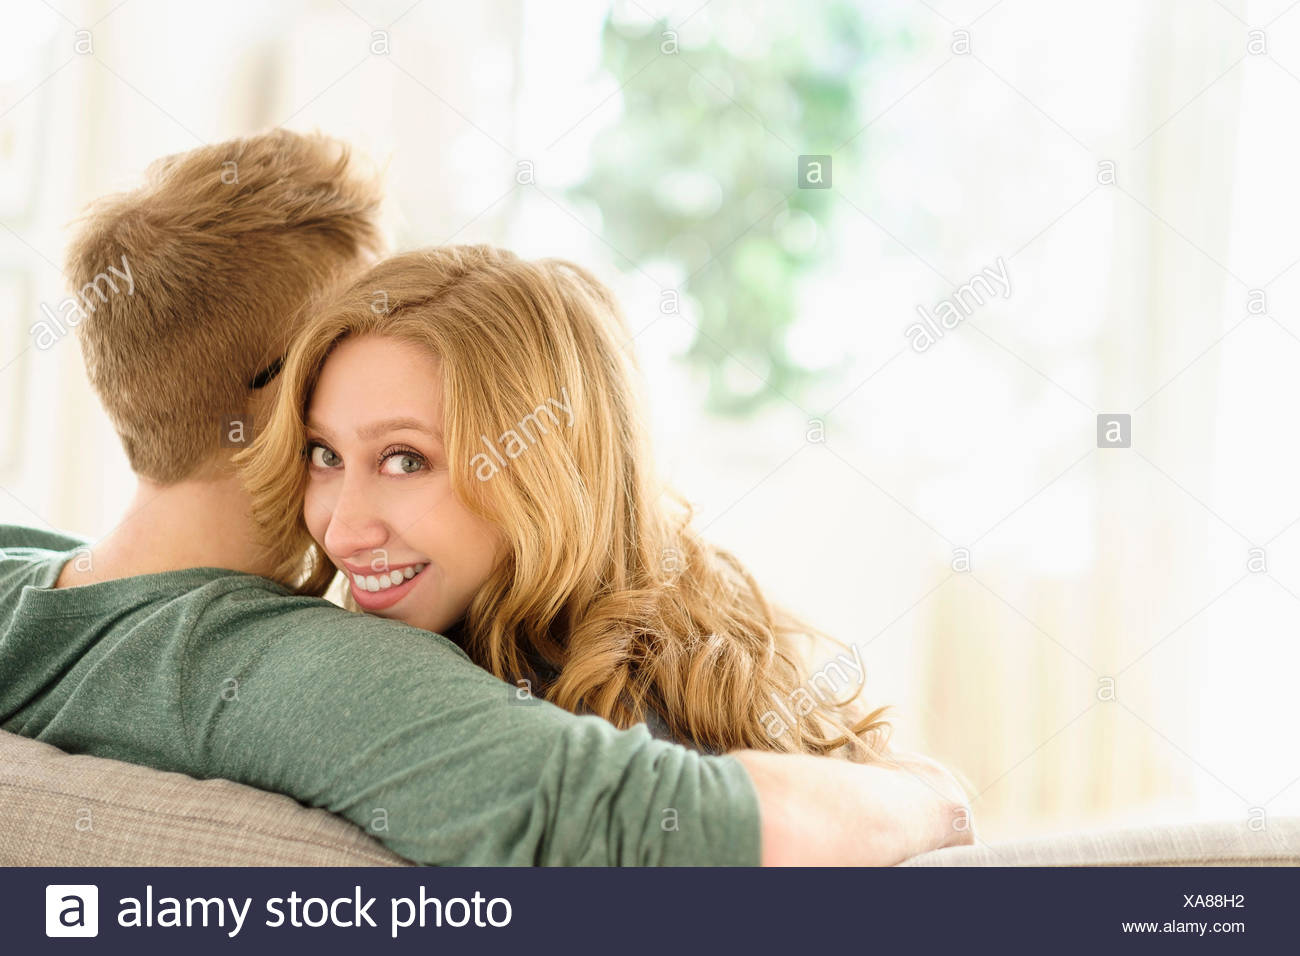 Portrait of young woman hugging boyfriend on sofa - Stock Image